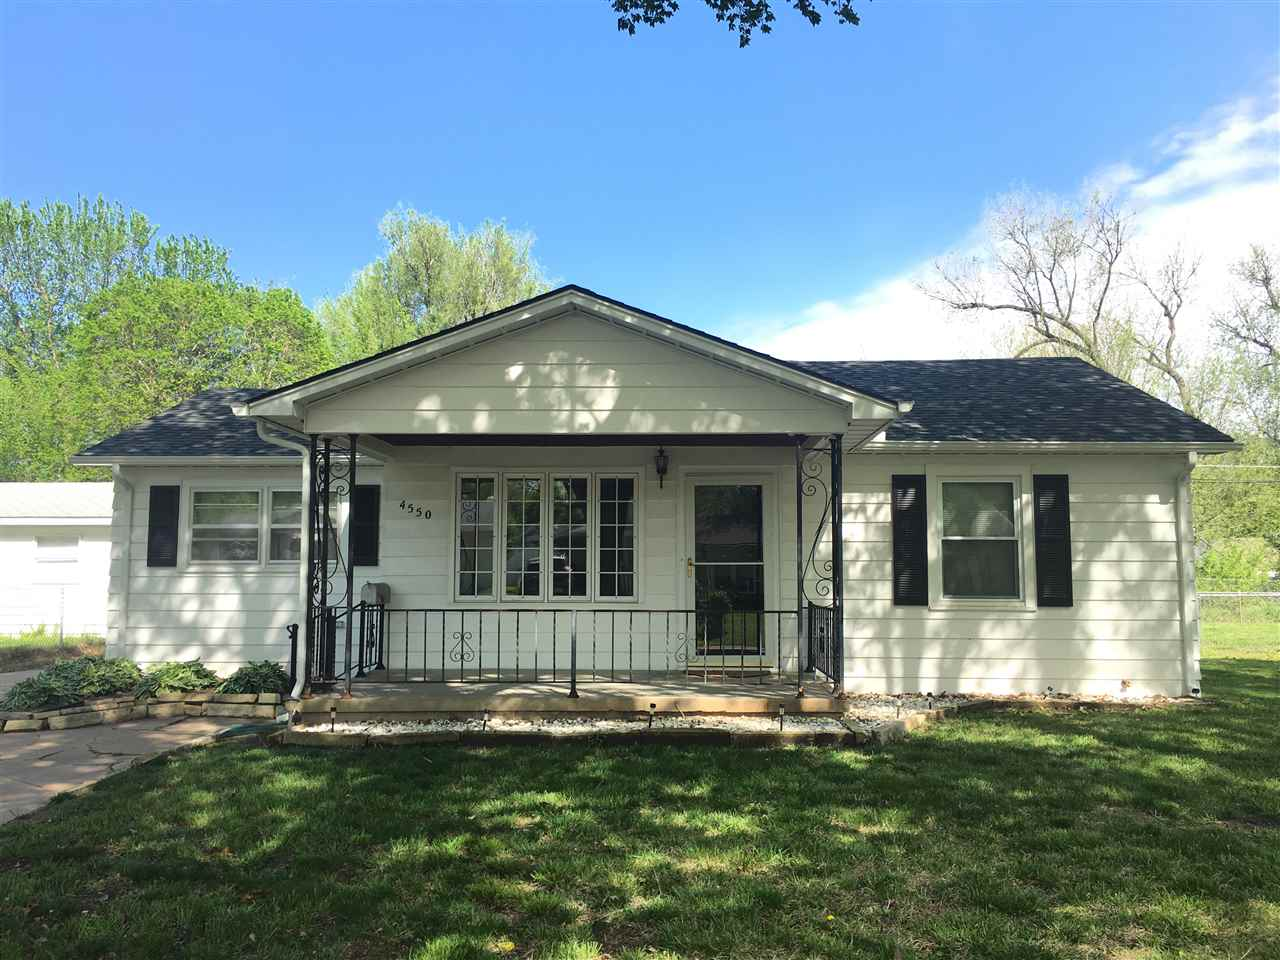 4550 S Sycamore Ave., Wichita, KS 67217